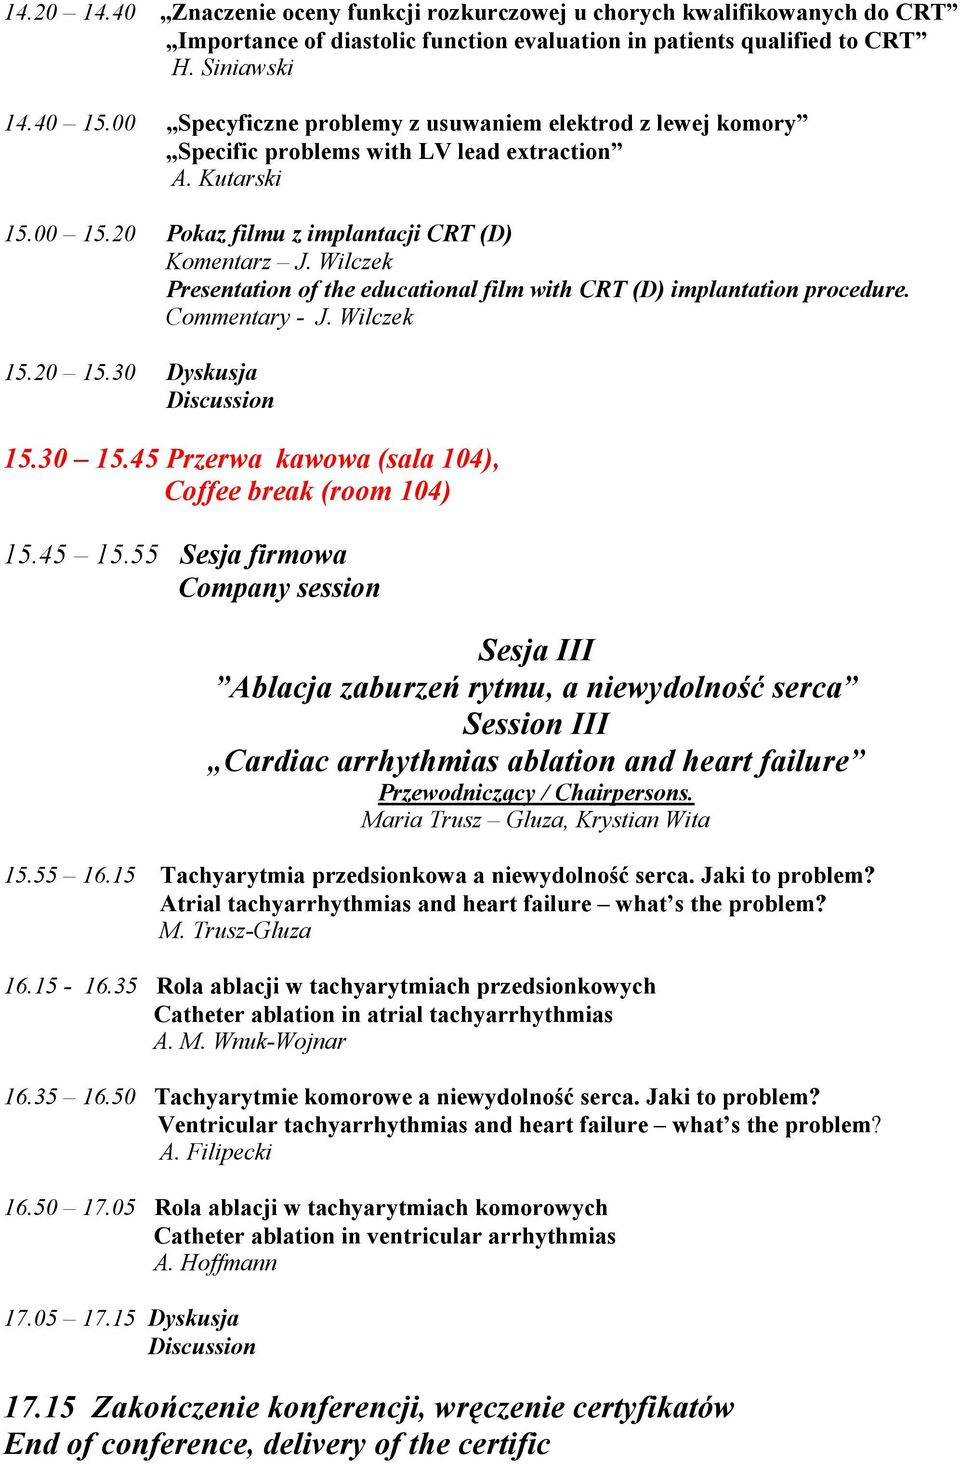 Wilczek Presentation of the educational film with CRT (D) implantation procedure. Commentary - J. Wilczek 15.20 15.30 Dyskusja 15.30 15.45 Przerwa kawowa (sala 104), Coffee break (room 104) 15.45 15.